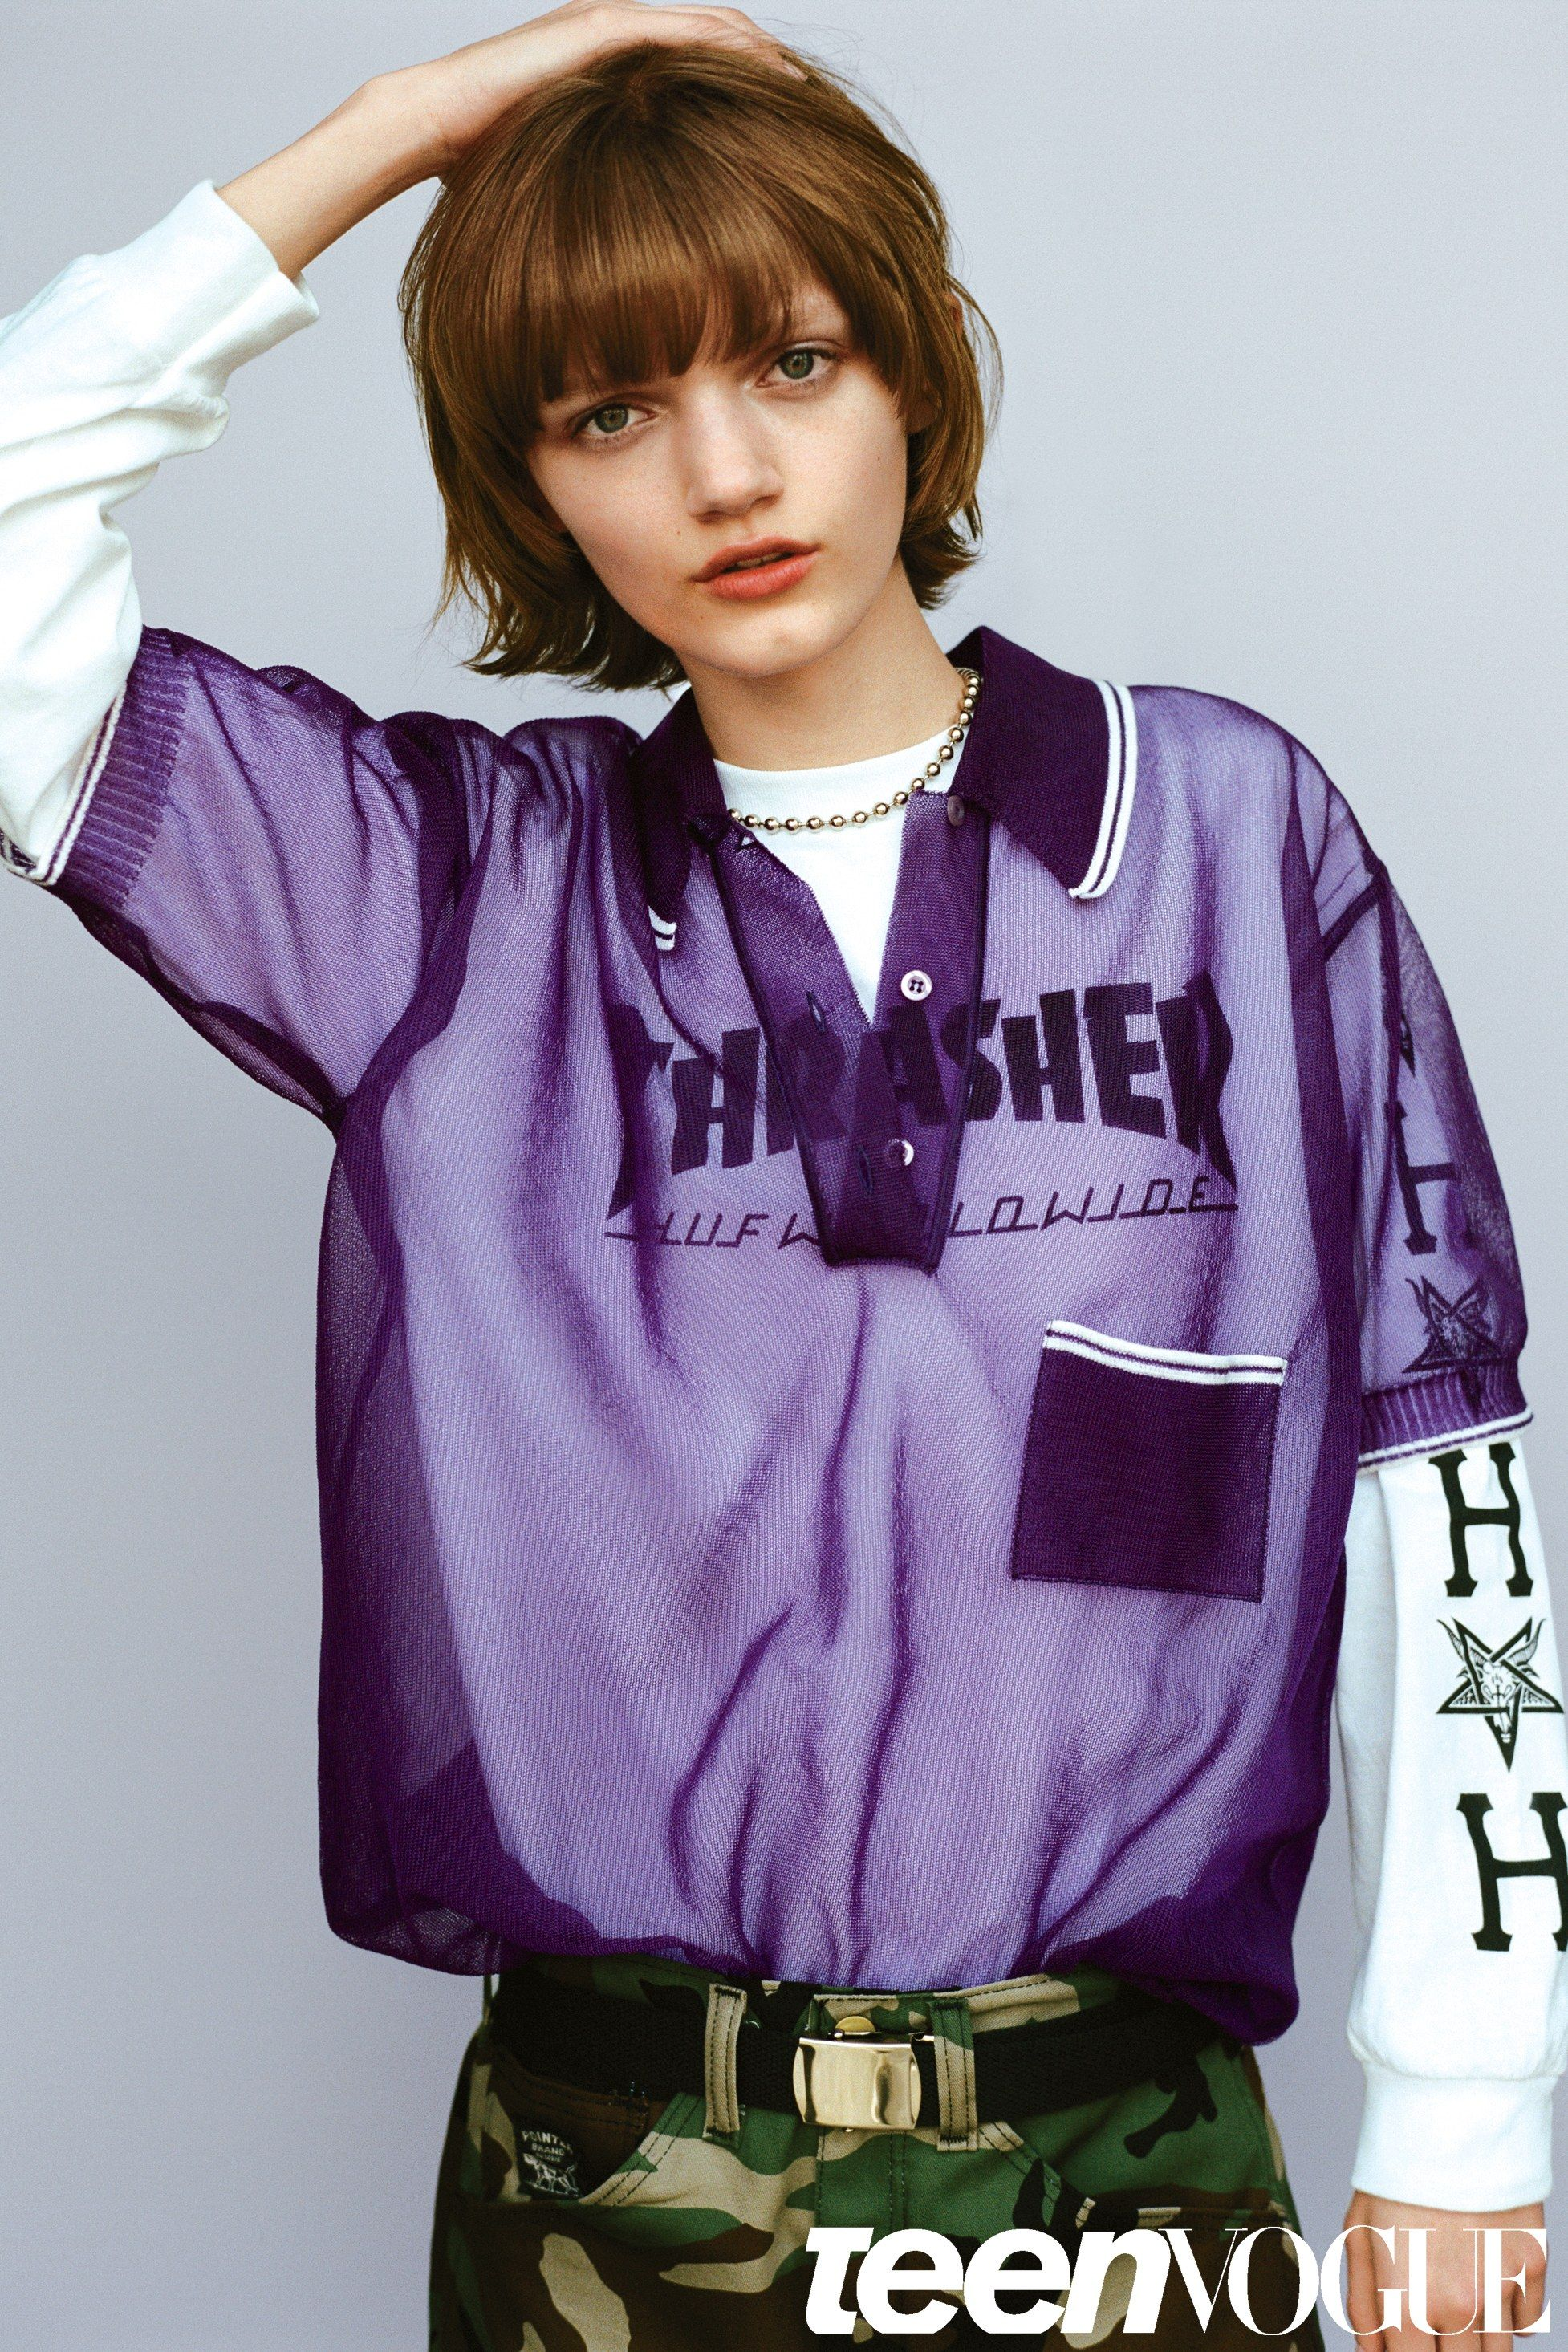 Spring S Coolest Trend Brings High Fashion To Skatewear